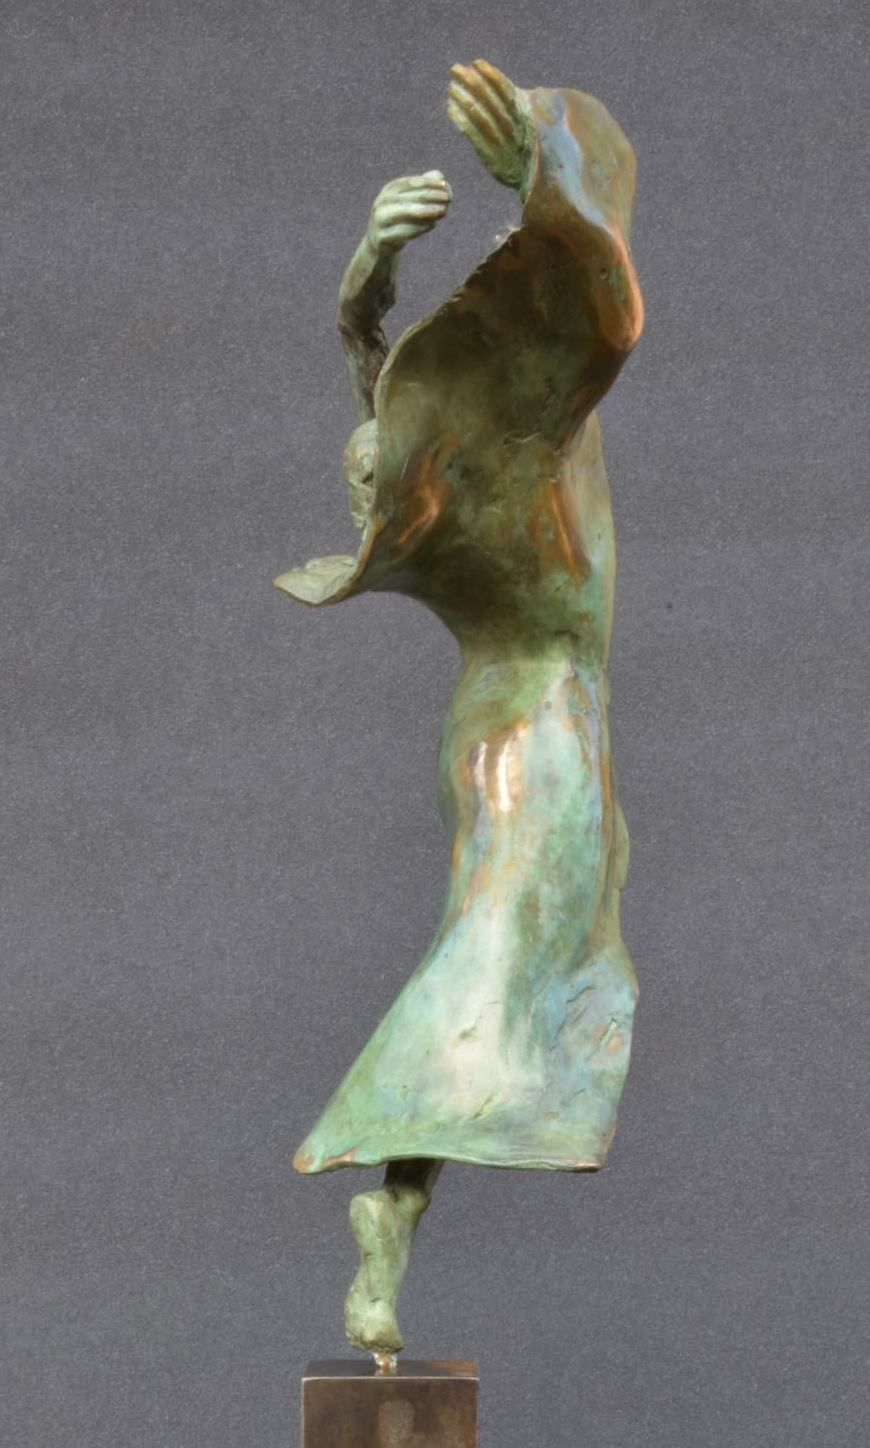 Danseuse moderne III,Yann Guillon,Sculpture, detail 2